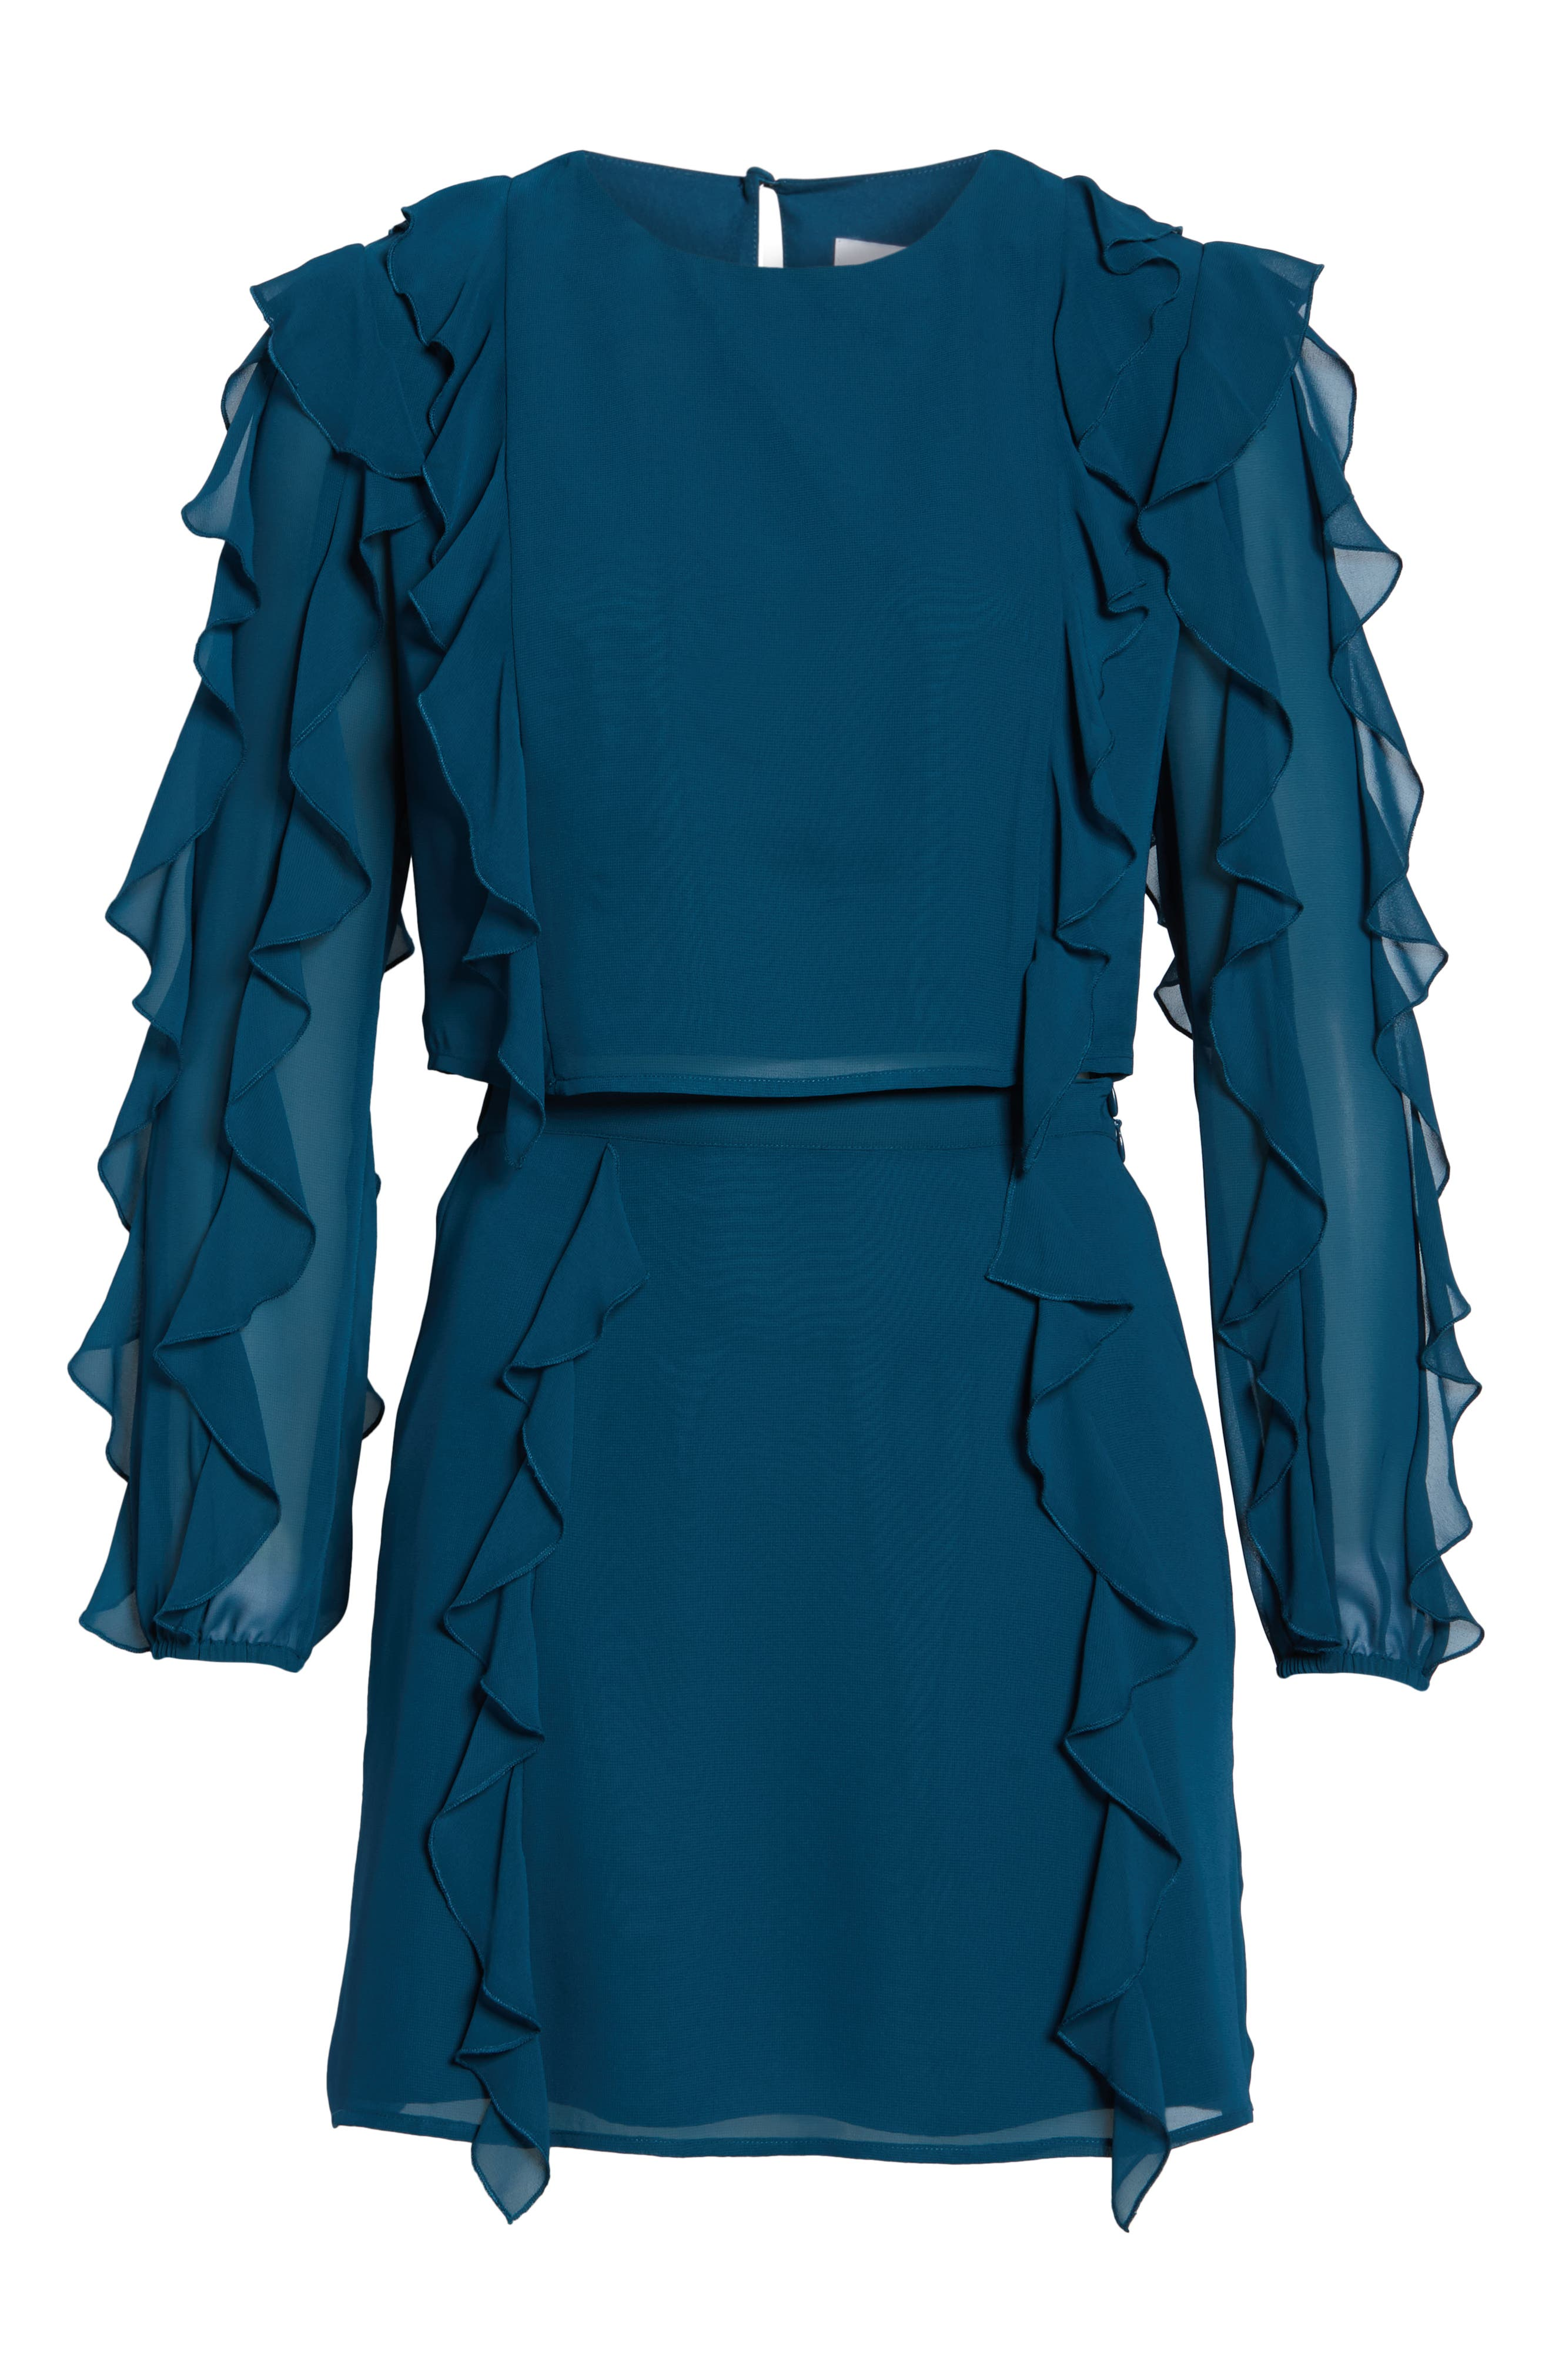 ALI & JAY, A Girl Can Dream Two-Piece Ruffle Trim Dress, Alternate thumbnail 7, color, TEAL